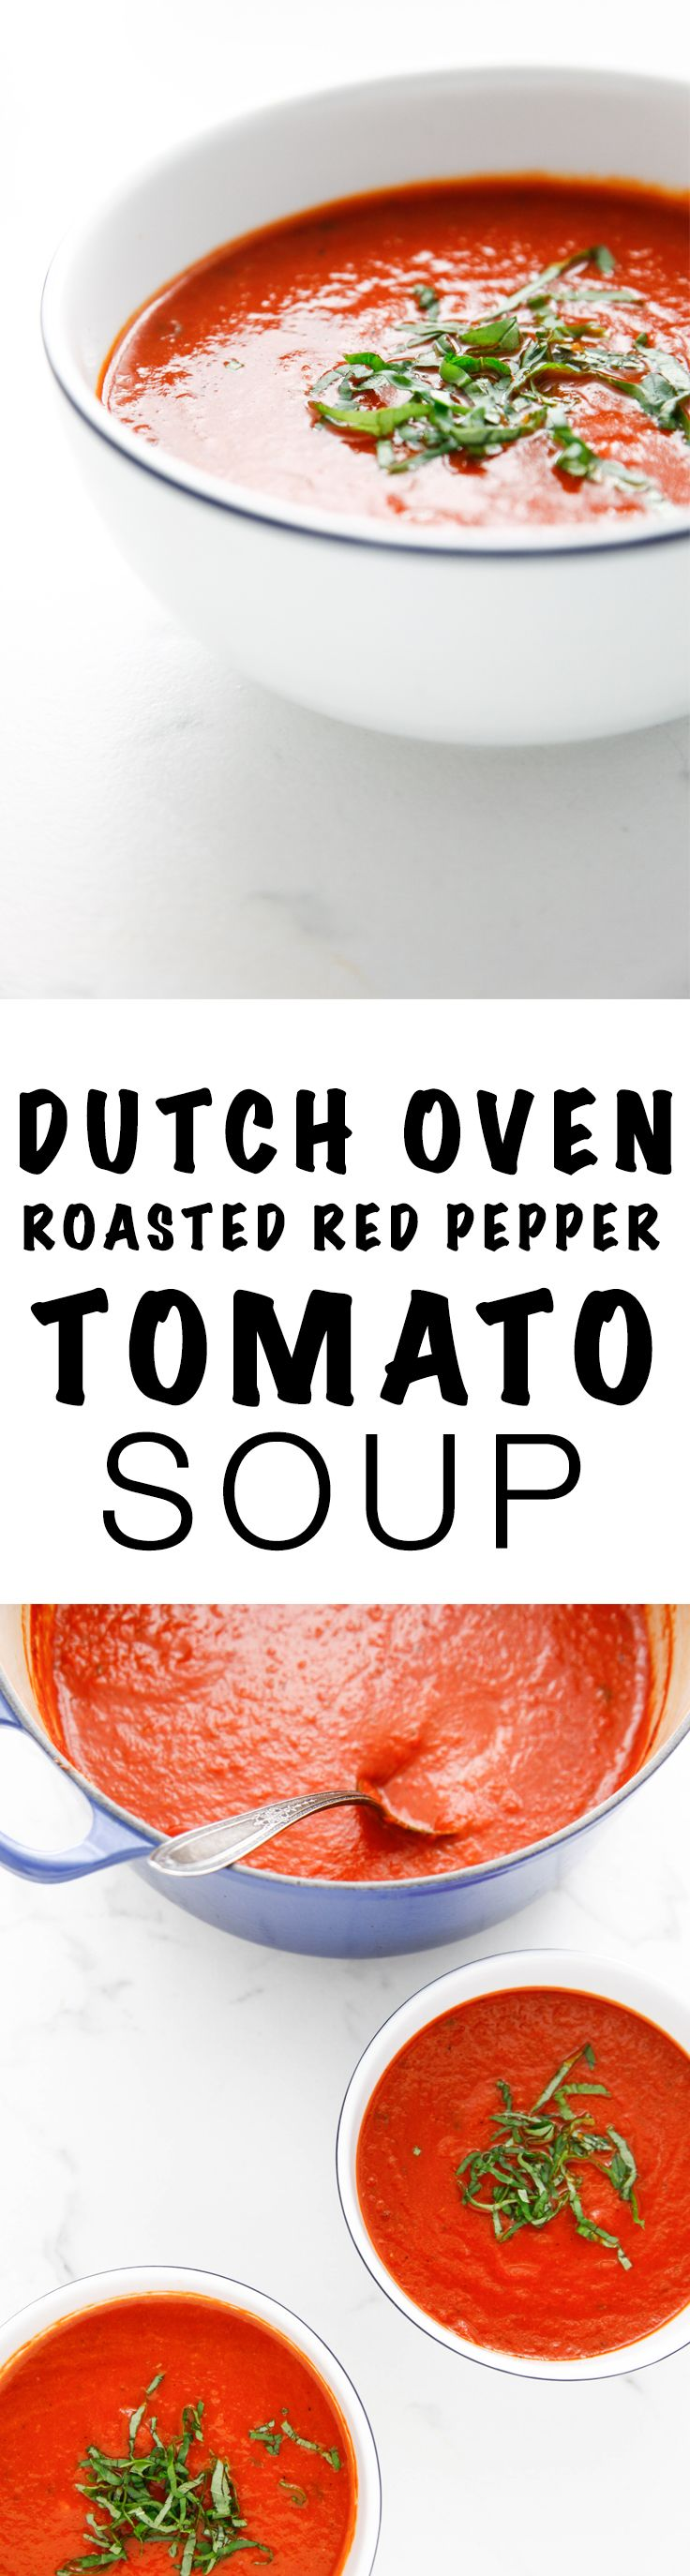 Dutch Oven Roasted Red Pepper and Tomato Soup via @thebrooklyncook